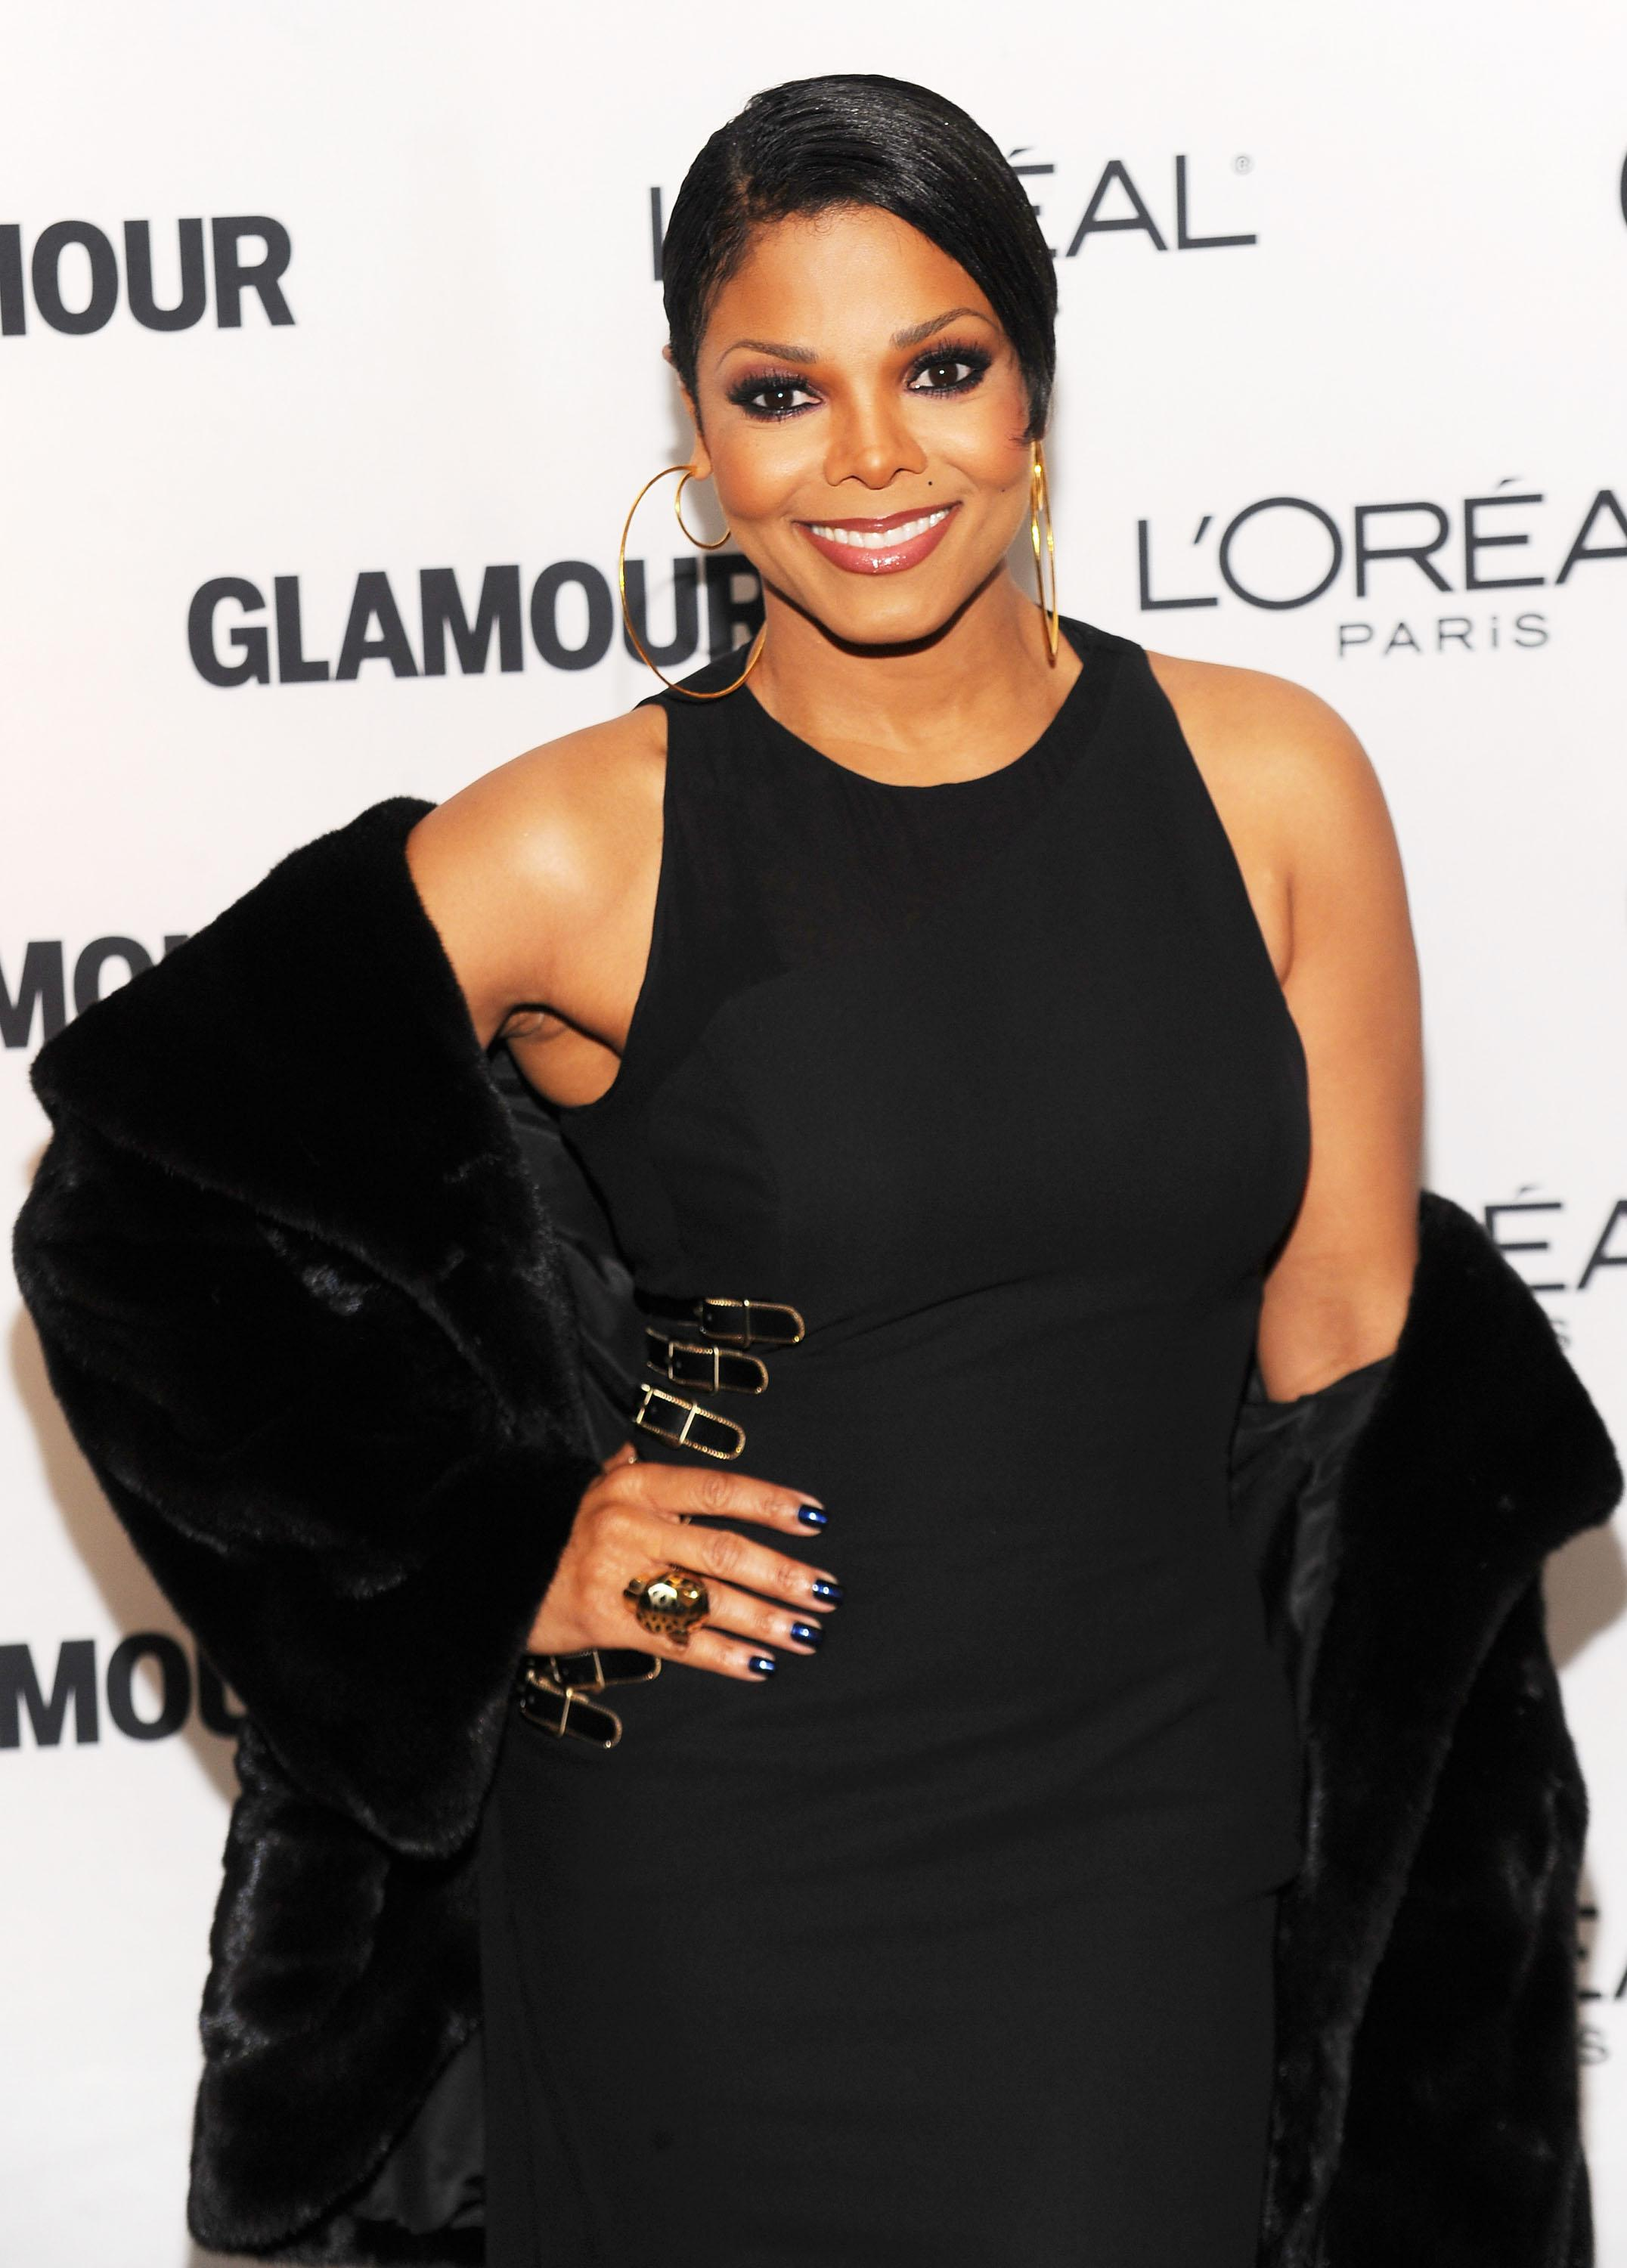 Glamour Magazine Honors The 2010 Women Of The Year - Red Carpet